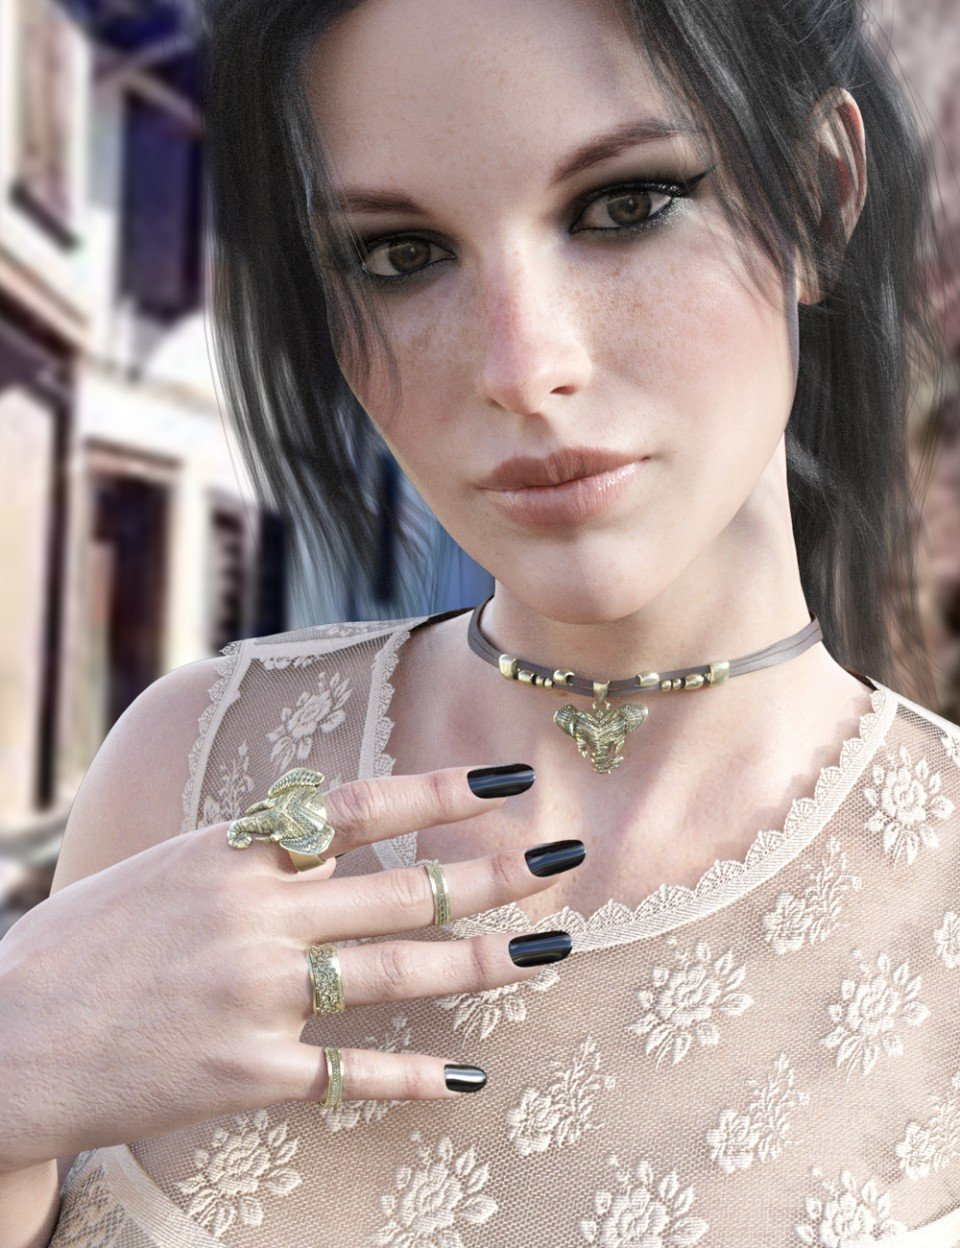 X-Fashion Bohemian Top and Accessories for Genesis 8 Female(s)_DAZ3D下载站